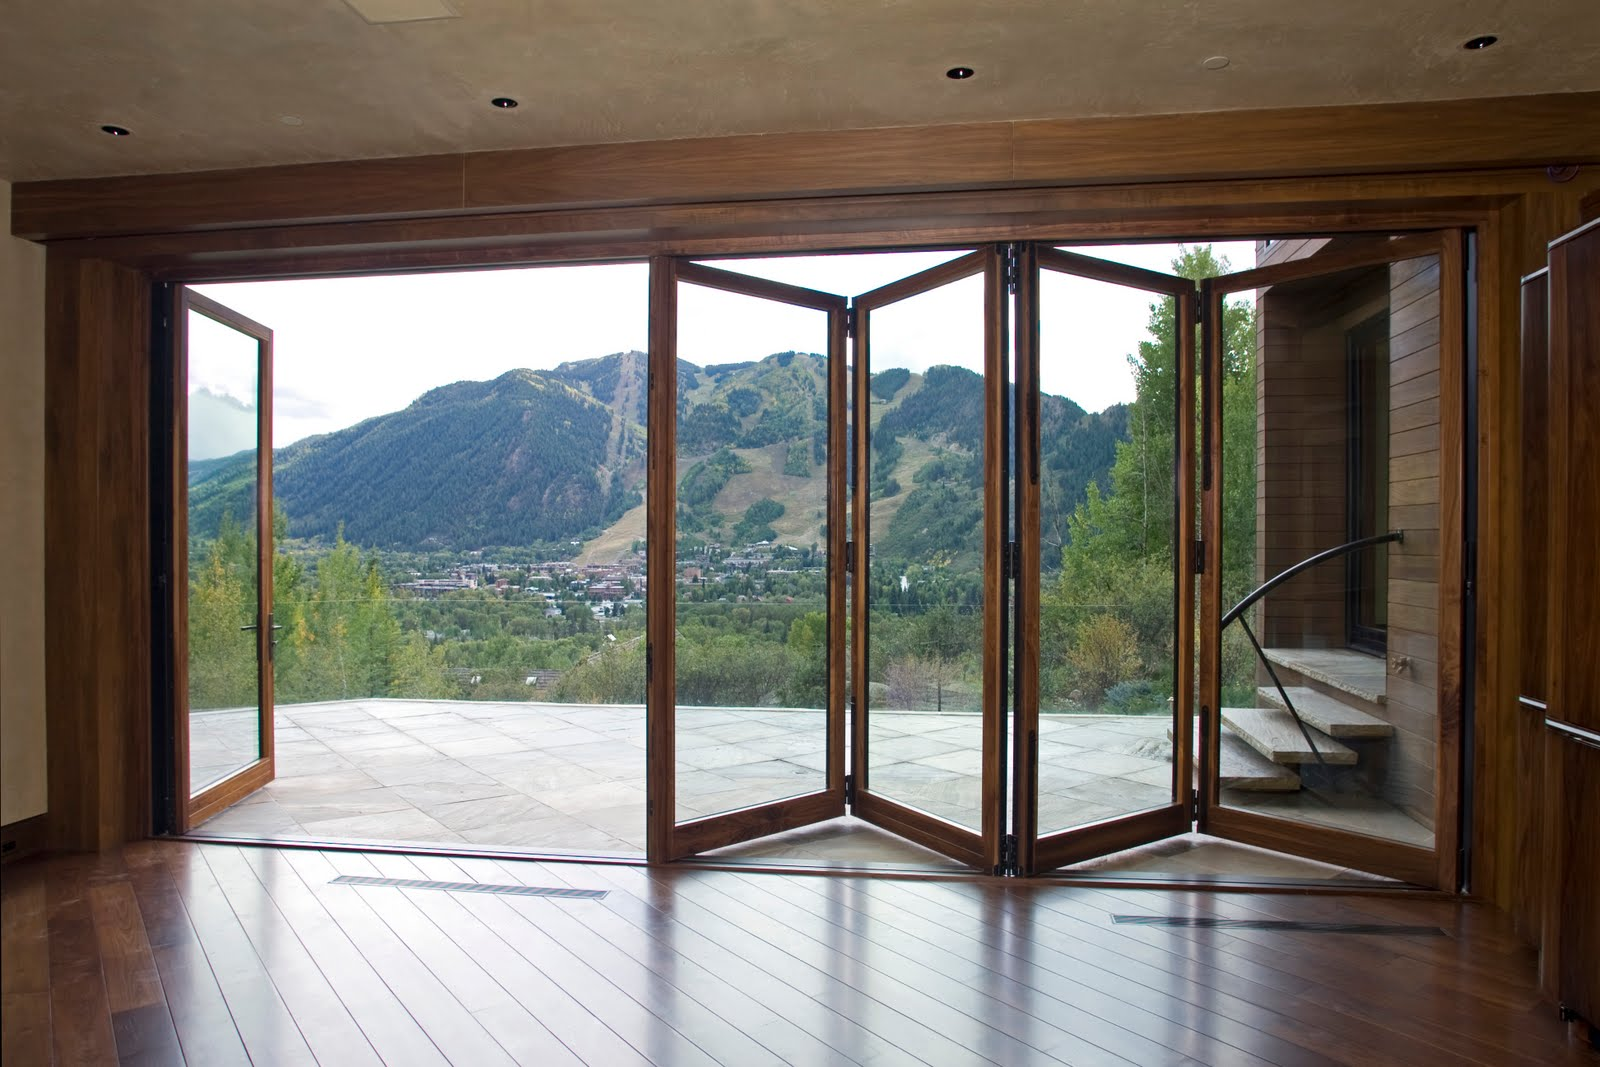 Grabill windows and doors product highlight folding doors for Exterior entry doors with glass